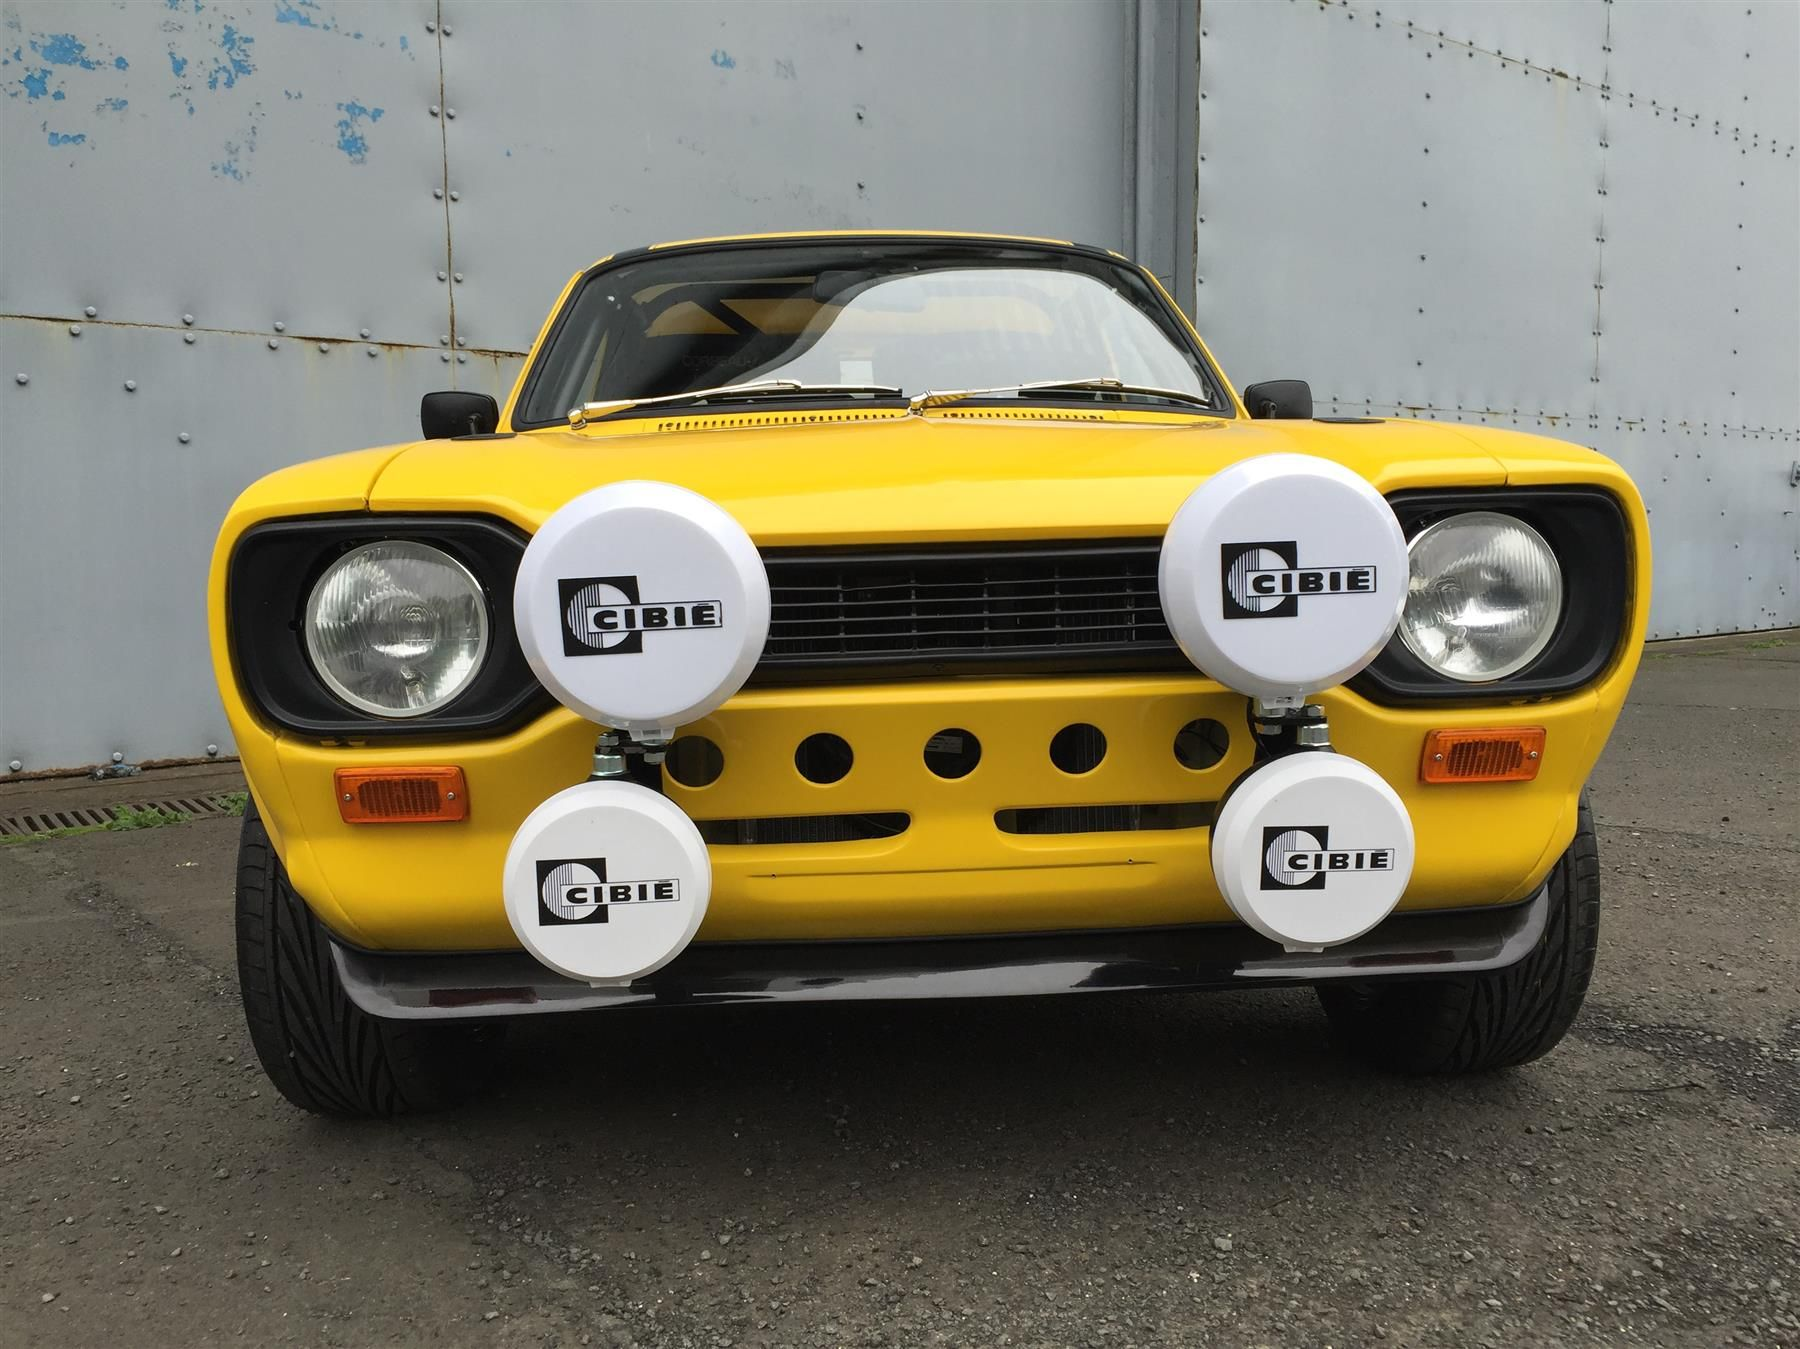 Used 1973 Ford Escort for sale in Durham | Pistonheads | Cars ...